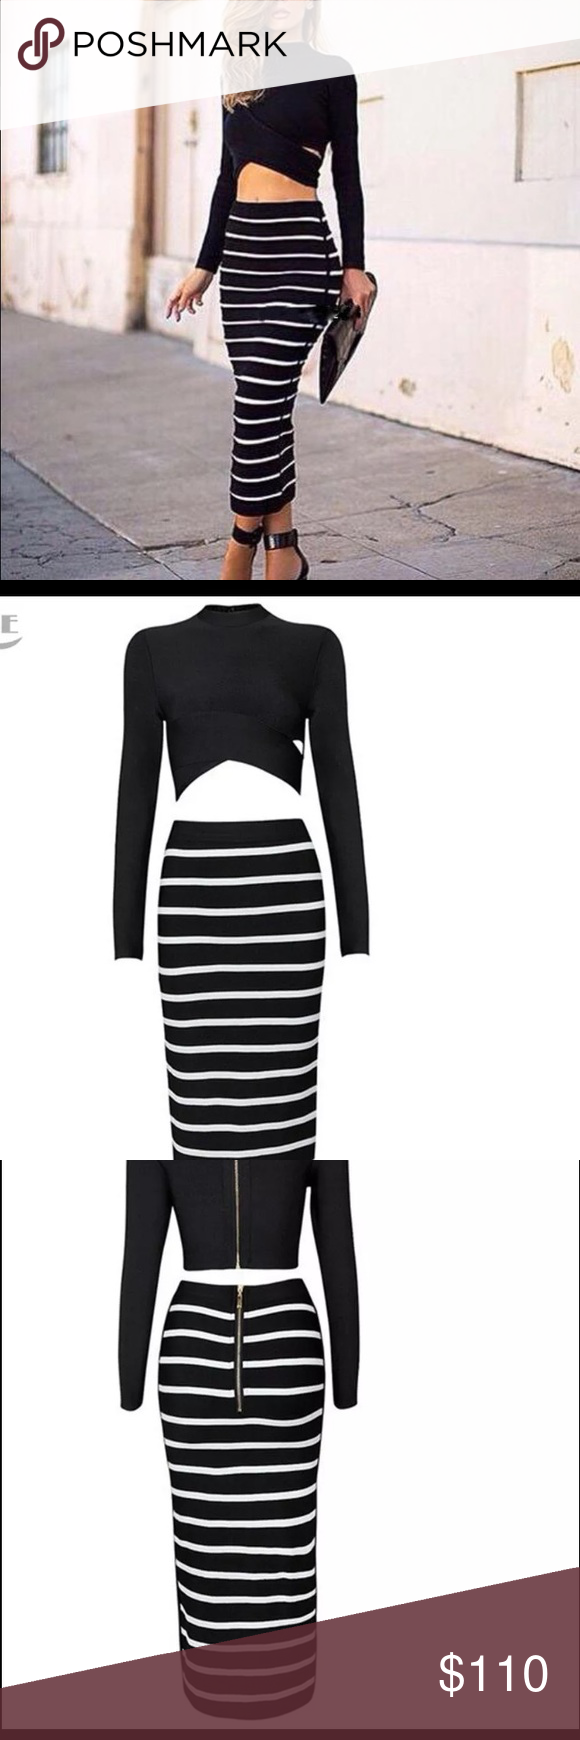 New piece long sleeve bandage top u skirt boutique customer support